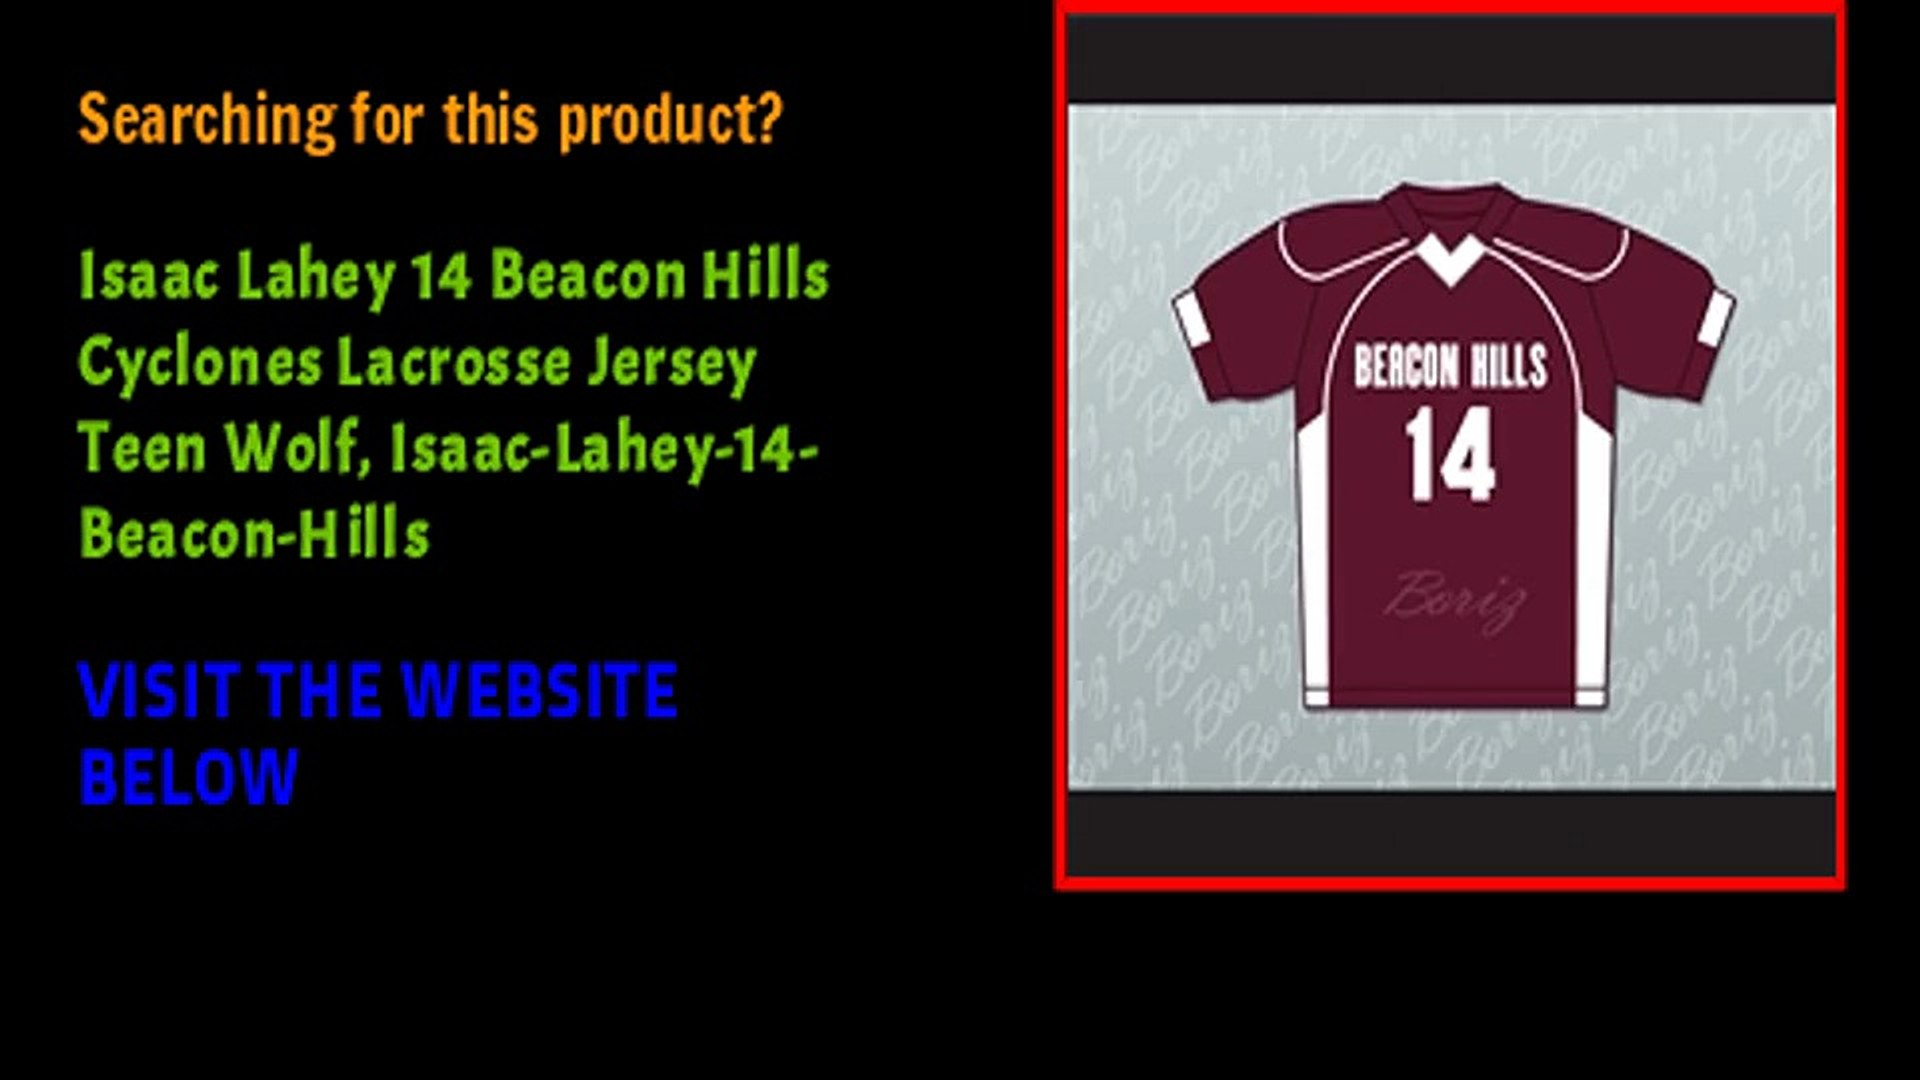 Isaac Lahey 14 Beacon Hills Cyclones Lacrosse Jersey Teen Wolf, Isaac-Lahey-14-Beacon-Hills